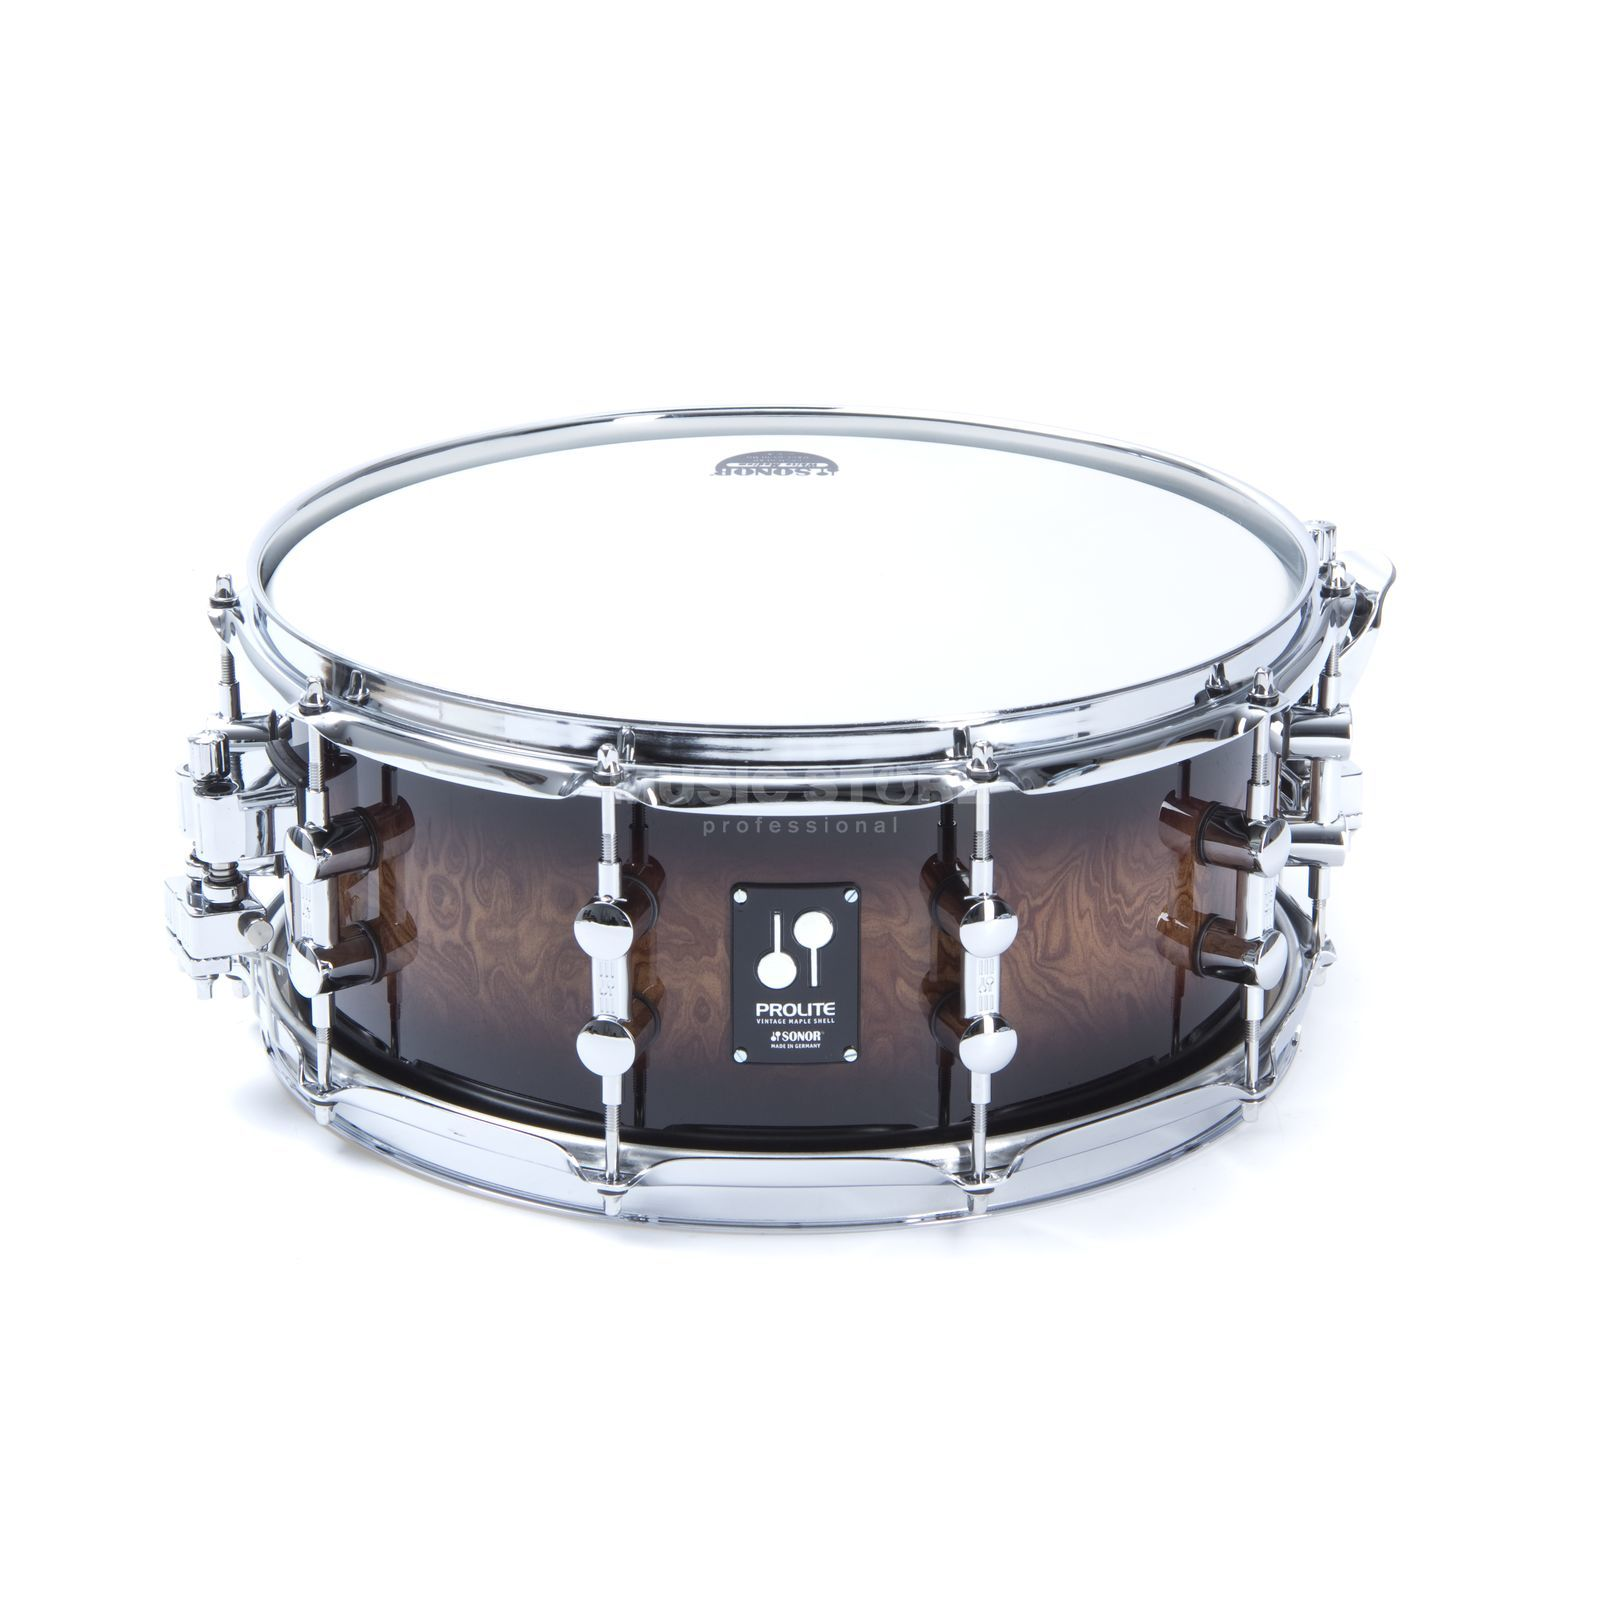 "Sonor ProLite Snare PL 12 1406 SDW, 14""x6"", Walnut Brown Burst #87 Produktbild"